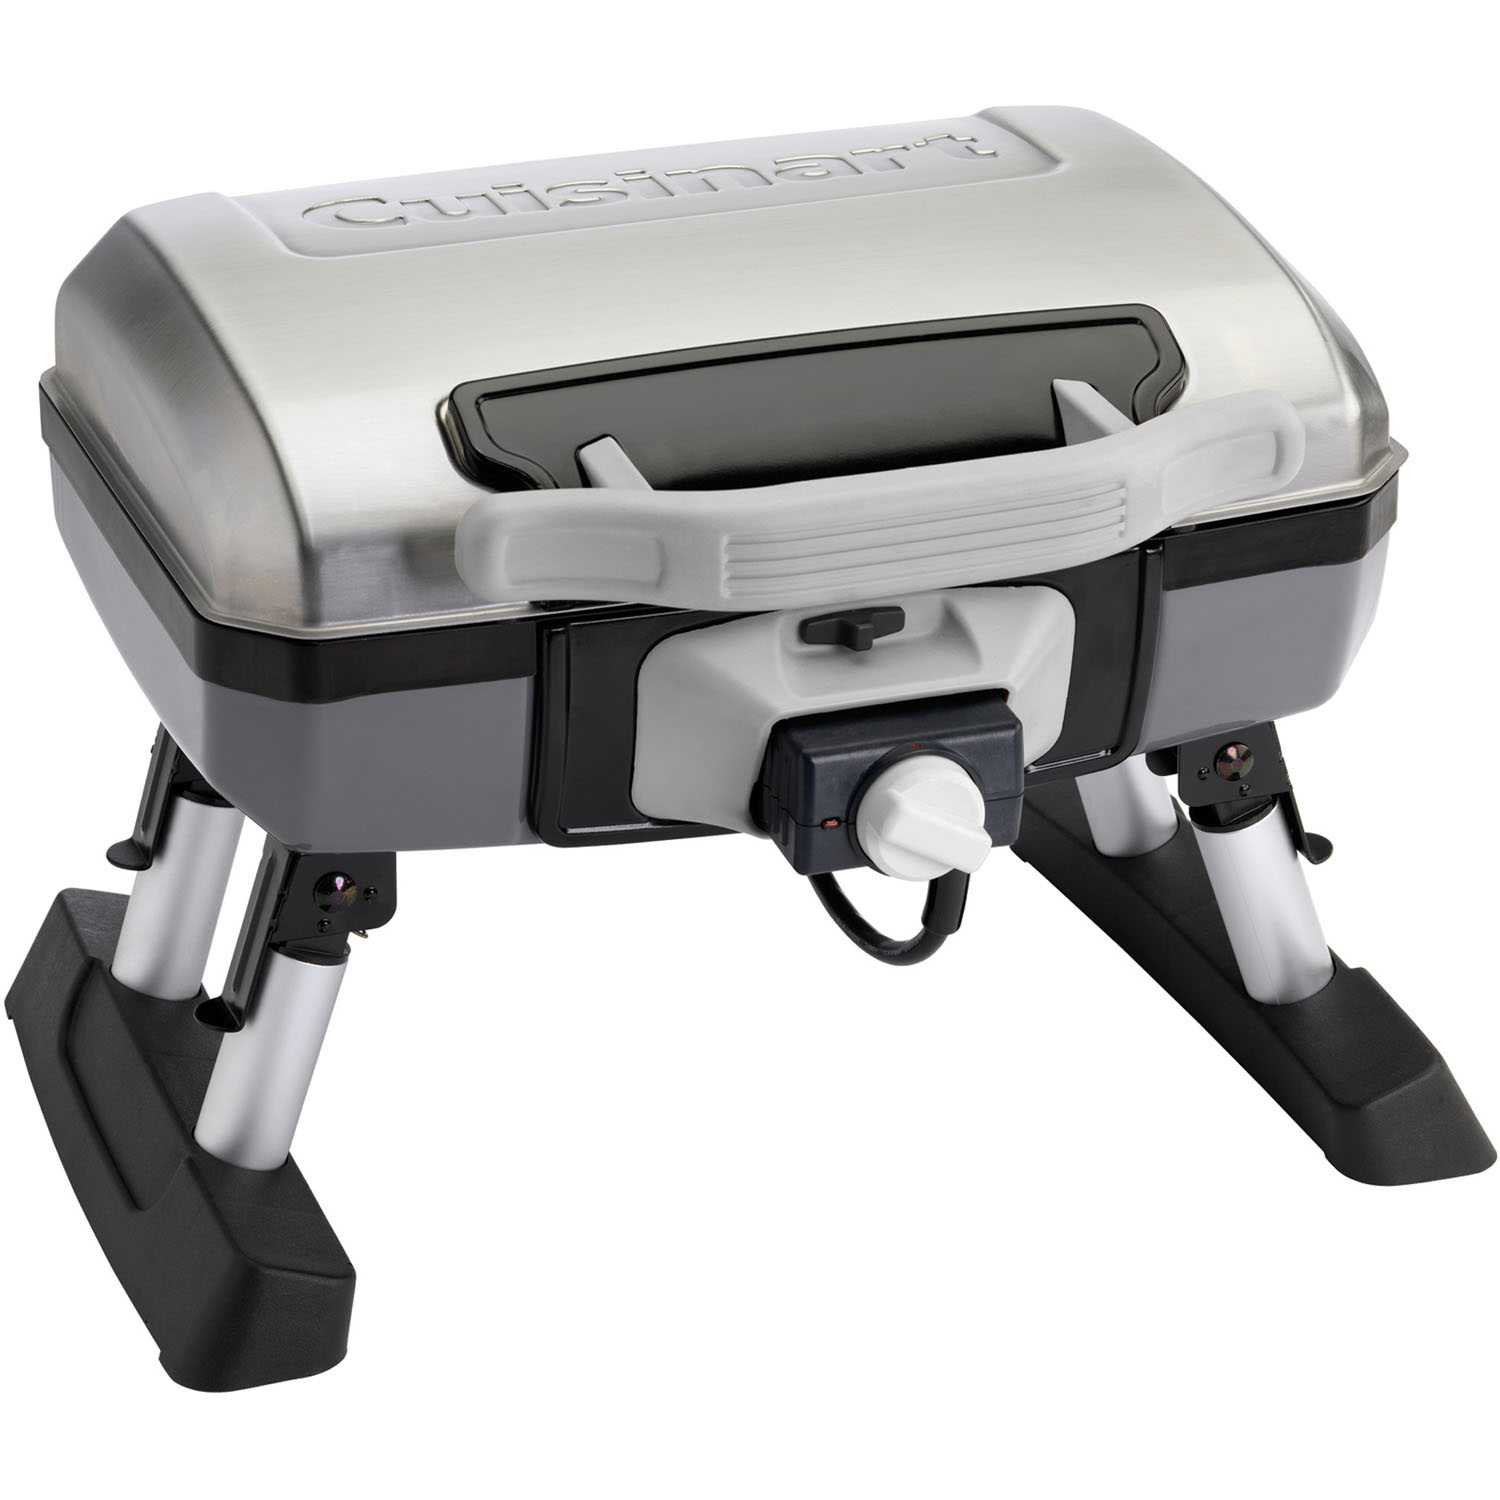 Cuisinart Portable Outdoor Electric Tabletop Grill Ceg 980t